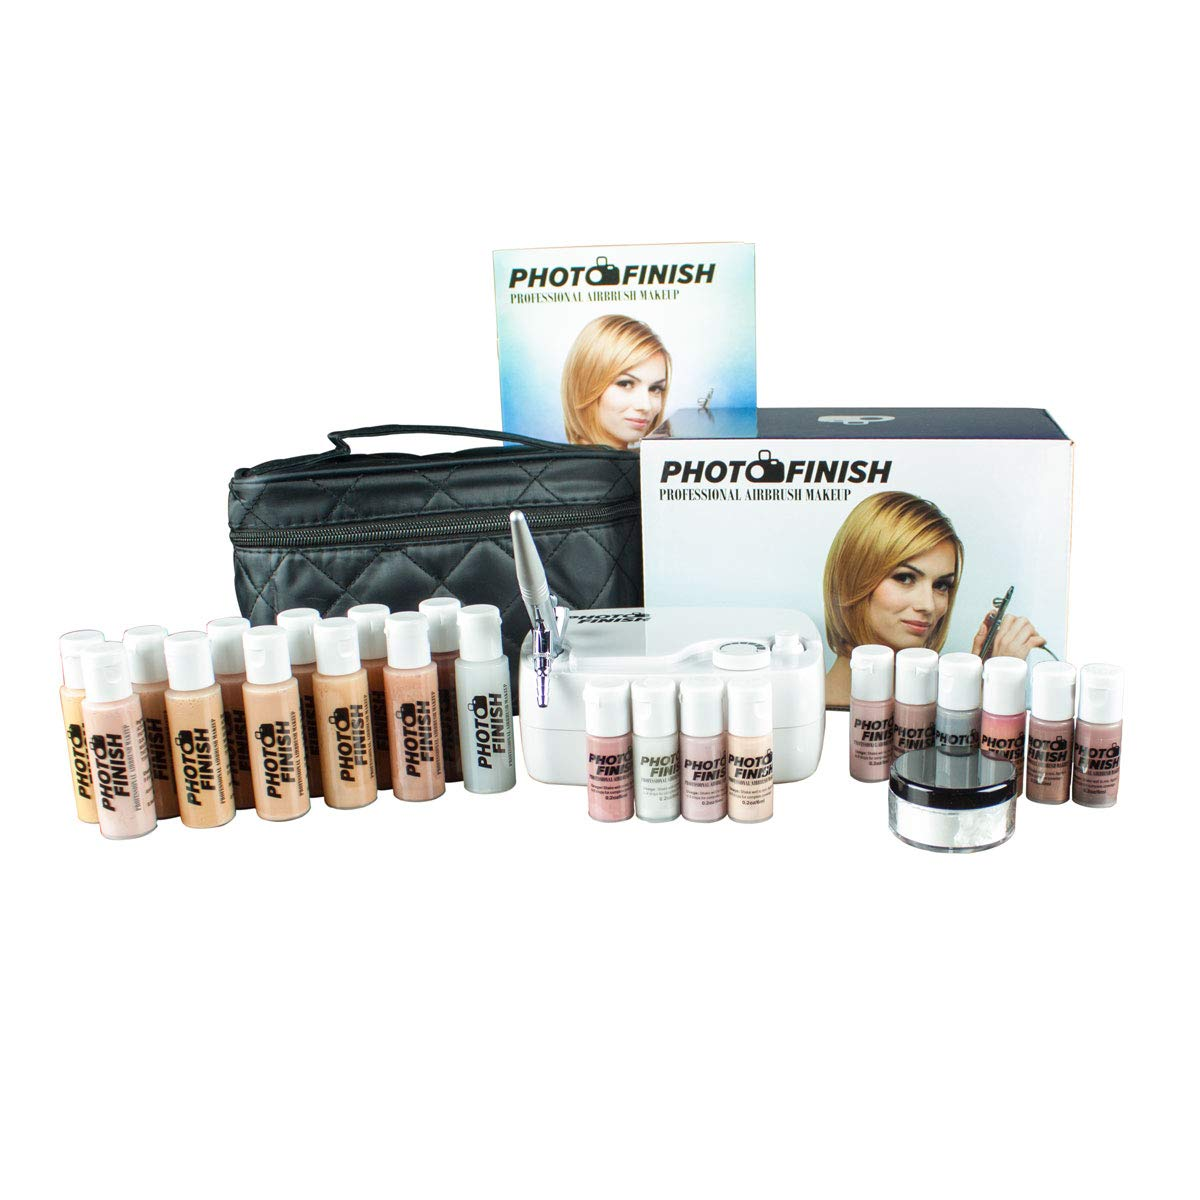 Amazon.com : Airbrush Cosmetic Makeup Deluxe System Set Photo Finish Professional Master Kit/Fair to Tan Shades (Matte Finish) : Beauty